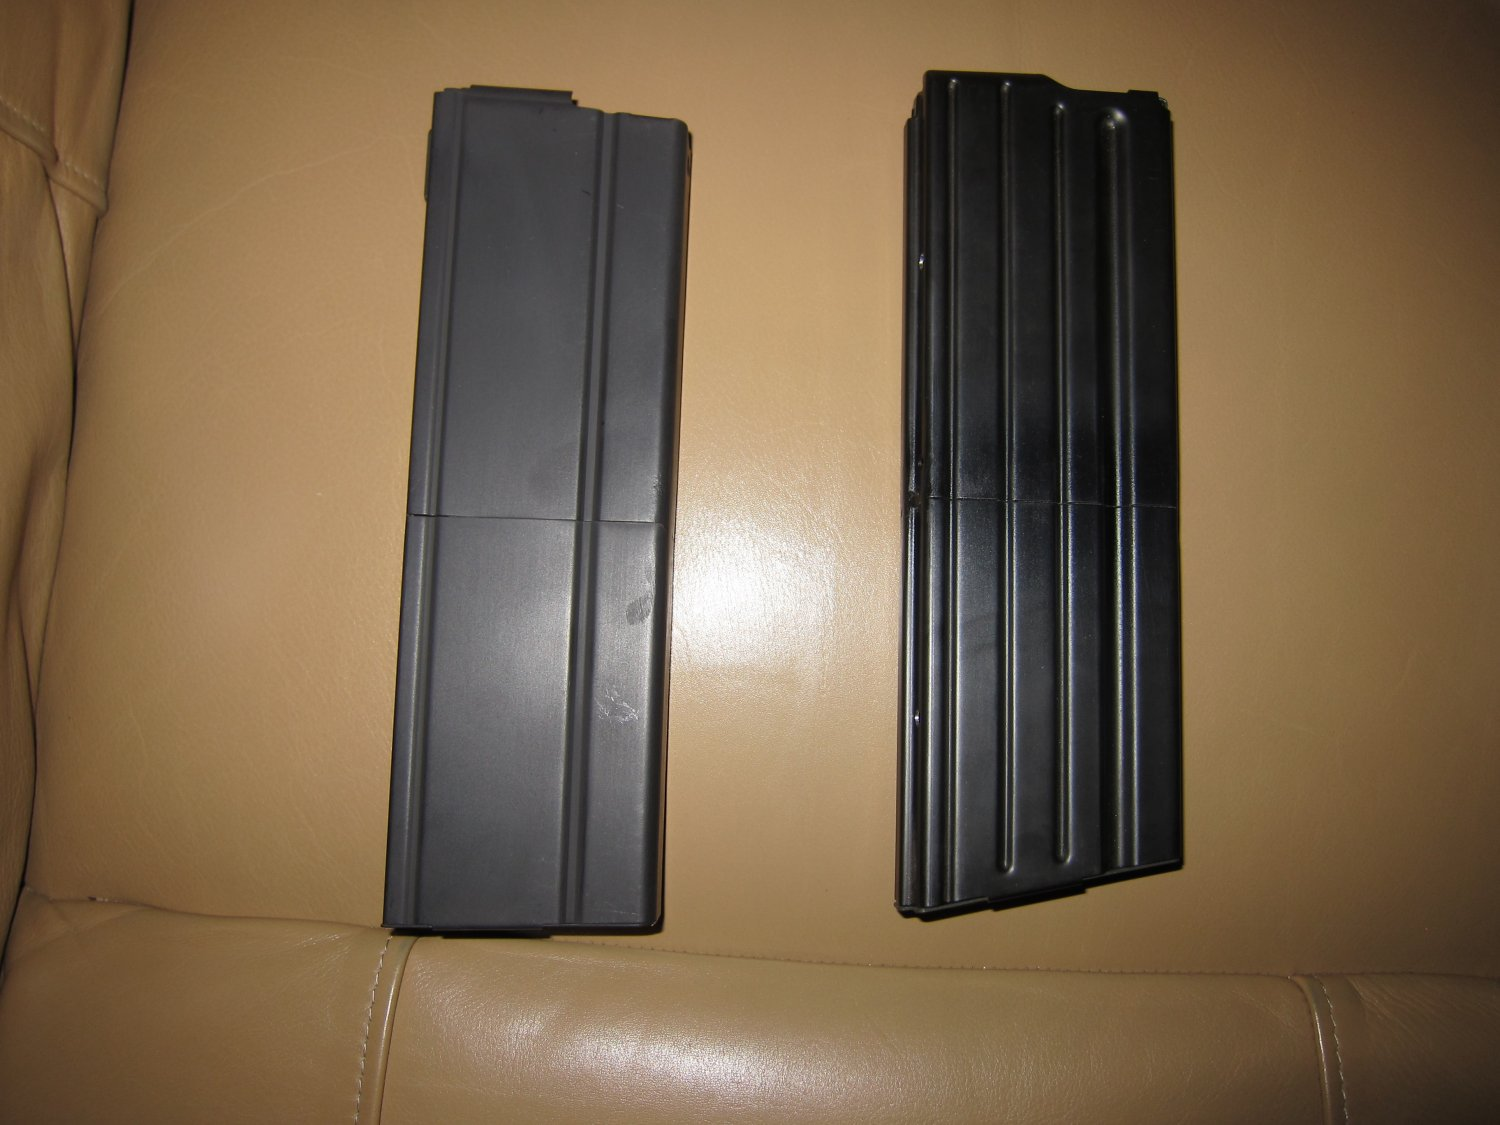 Higher Capacity 32 Round SR 25 and M14 M1A 7.62mm Rifle Magazines 2 <!  :en  >Higher Capacity 55 Round 5.56mm NATO and 32 Round 7.62mm NATO Rifle Magazines for Tactical AR (AR 15 and SR 25 type) and M14/M1A Rifles/Carbines/SBRs  (Photos and Video!) <!  :  >